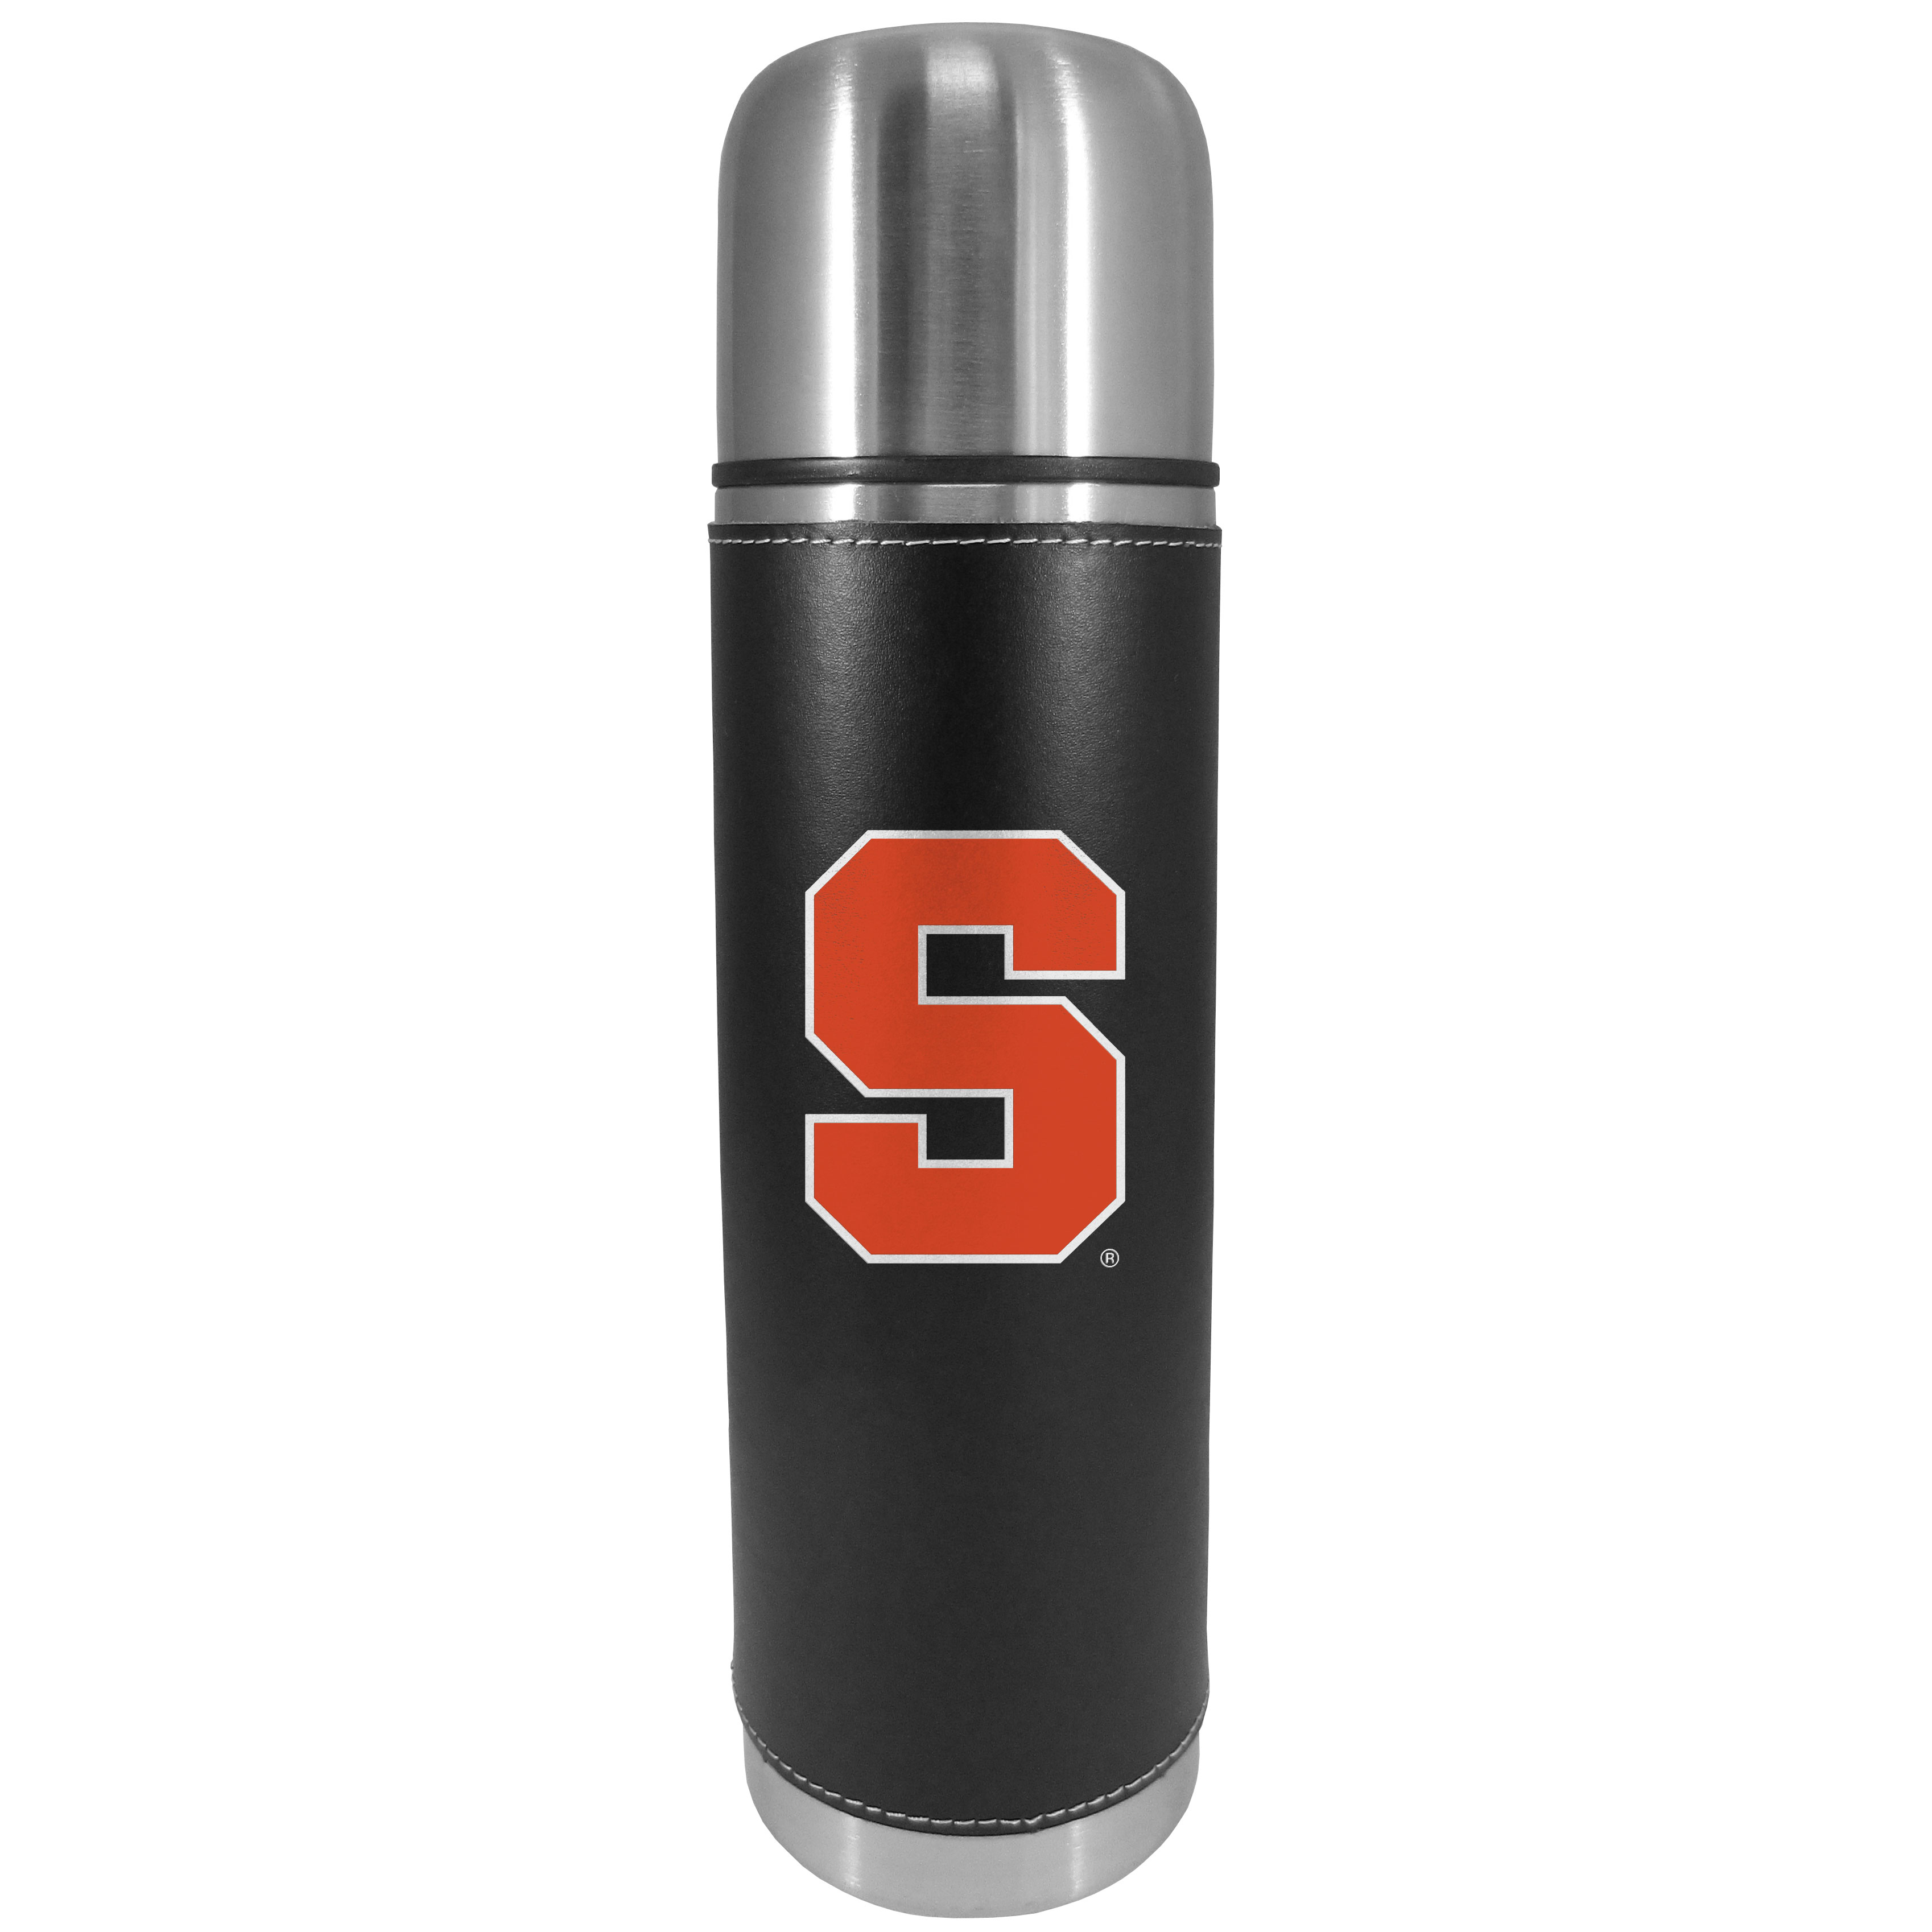 Syracuse Orange Graphics Thermos - This attractive, 26 ounce Syracuse Orange thermos is a great way to keep your beverages hot while on the go. The 11 inch tall, vacuum sealed thermos features a black vinyl wrap with stitched details and a digitally printed team logo. The lid screws on and can be used as a cup.